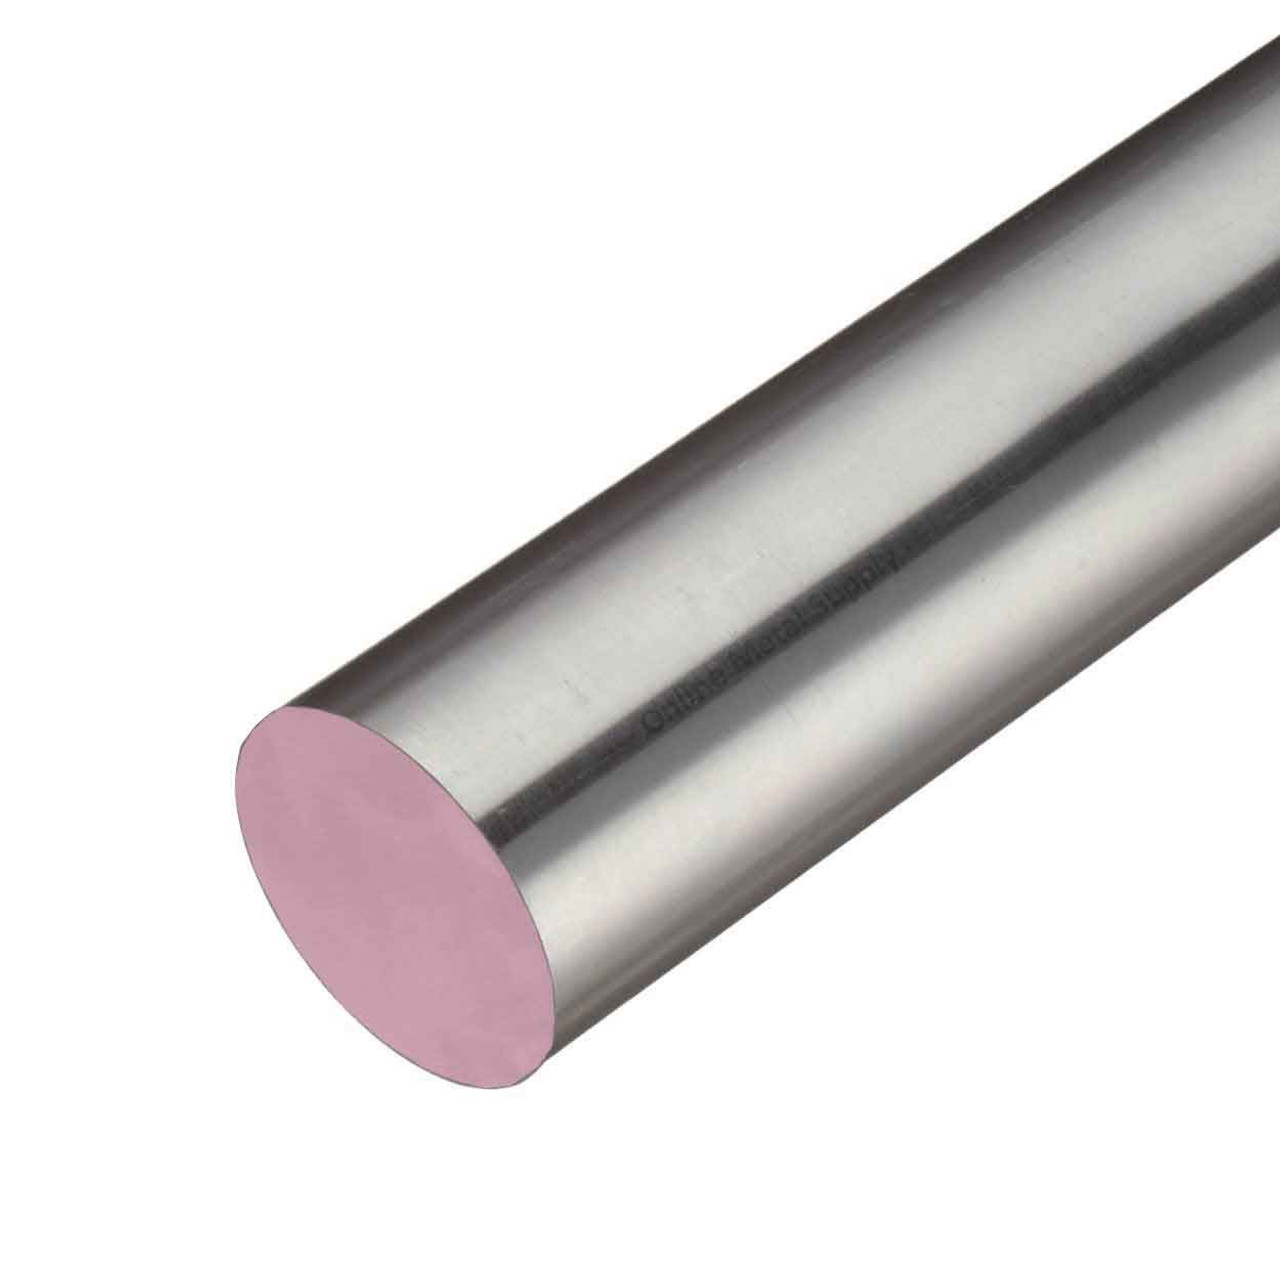 0.937 (15/16 inch) x 60 inches, 303 TGP Stainless Steel Round Rod